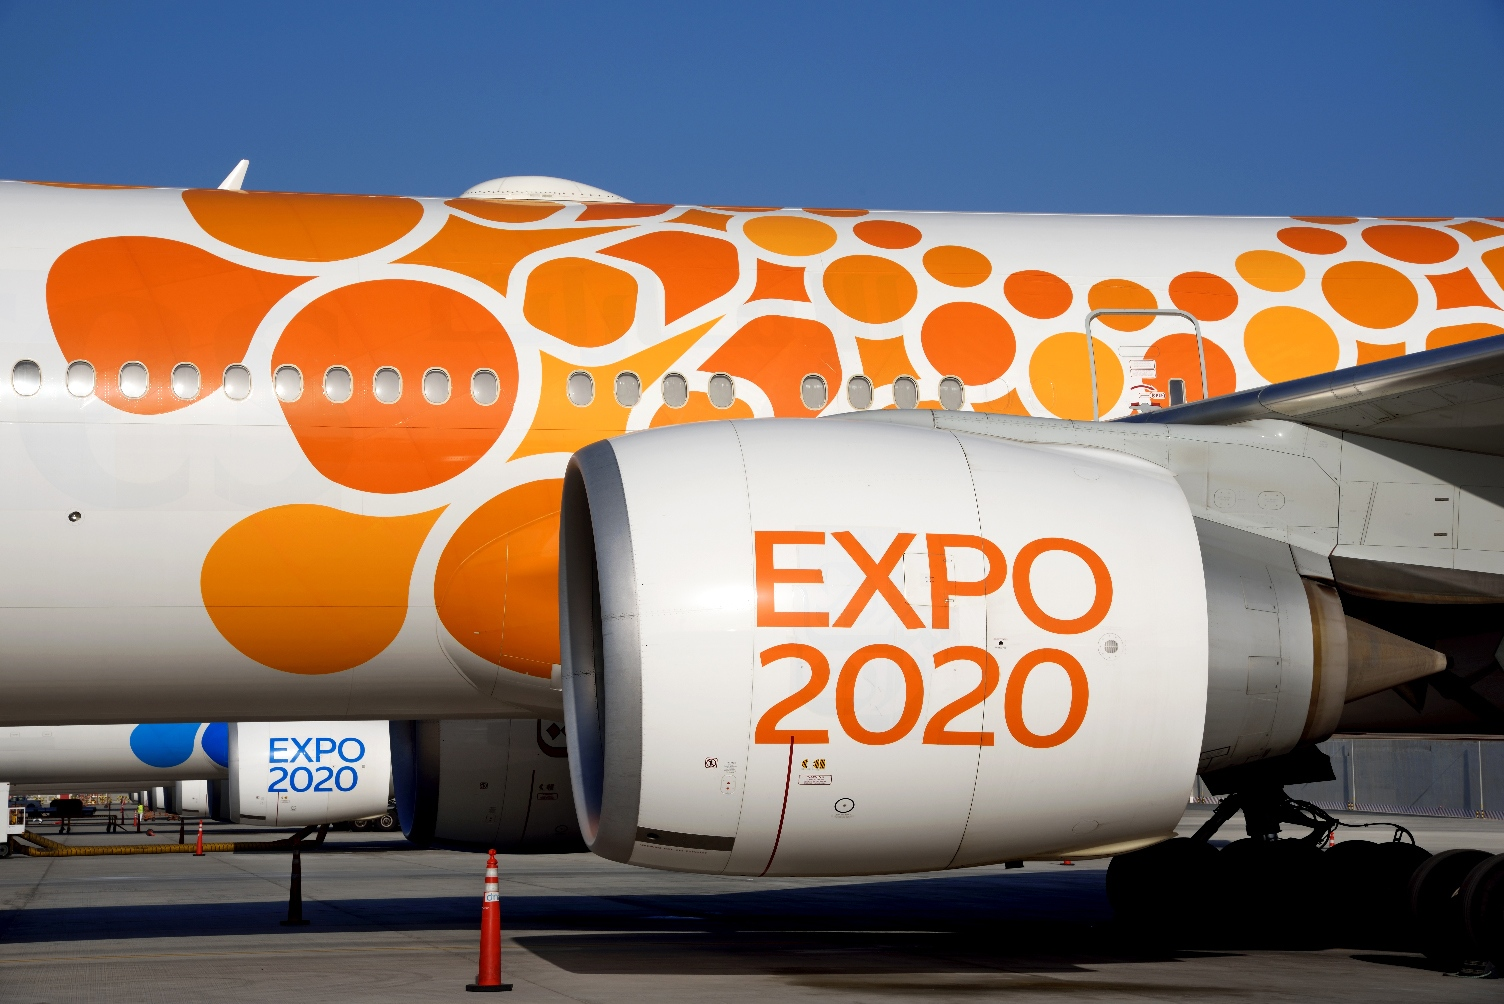 Emirates Expo 2020 fleet flies high